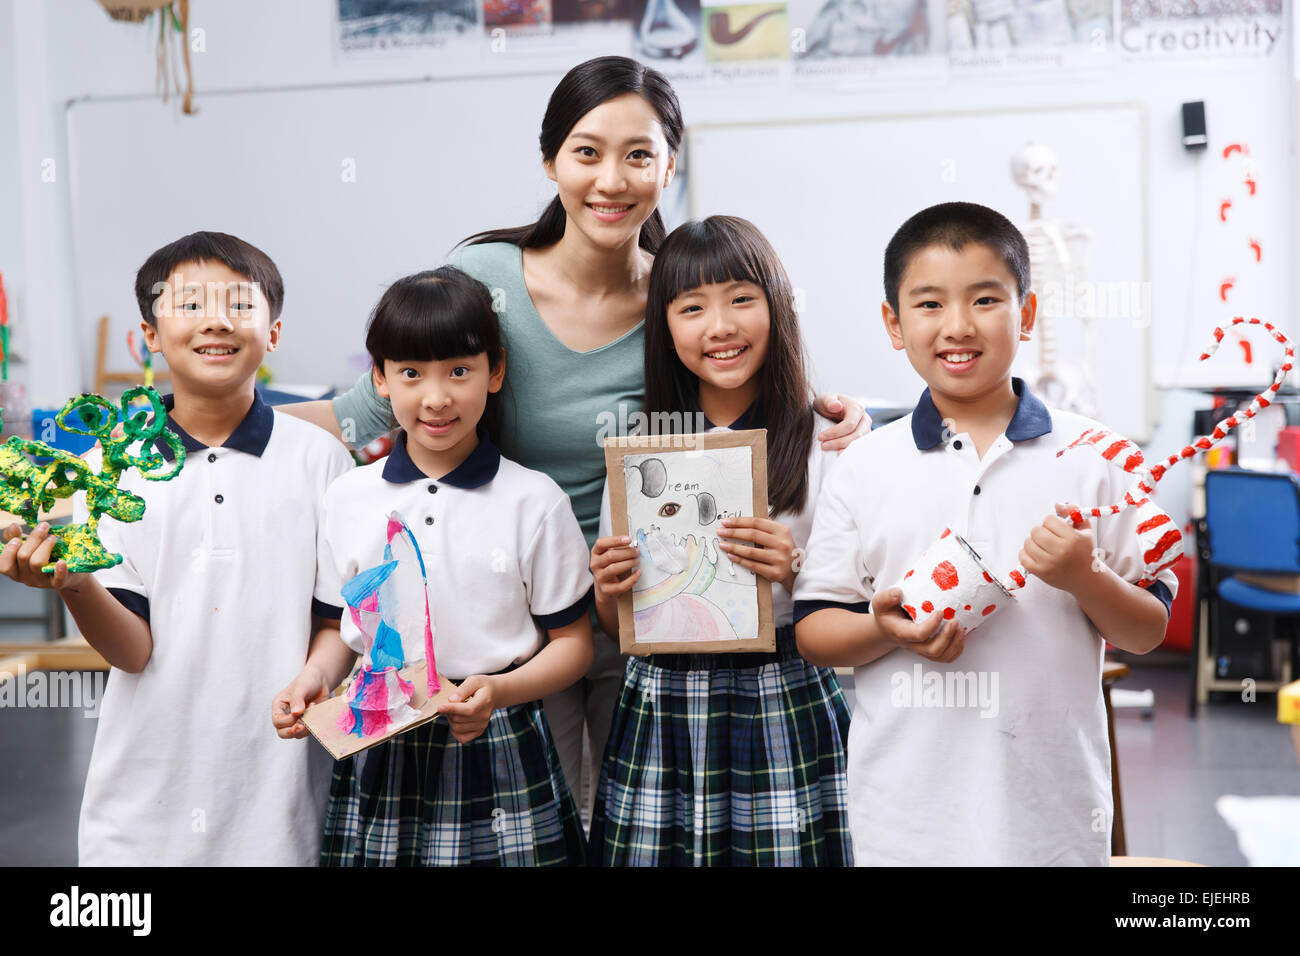 Students and teachers to display works in art class - Stock Image